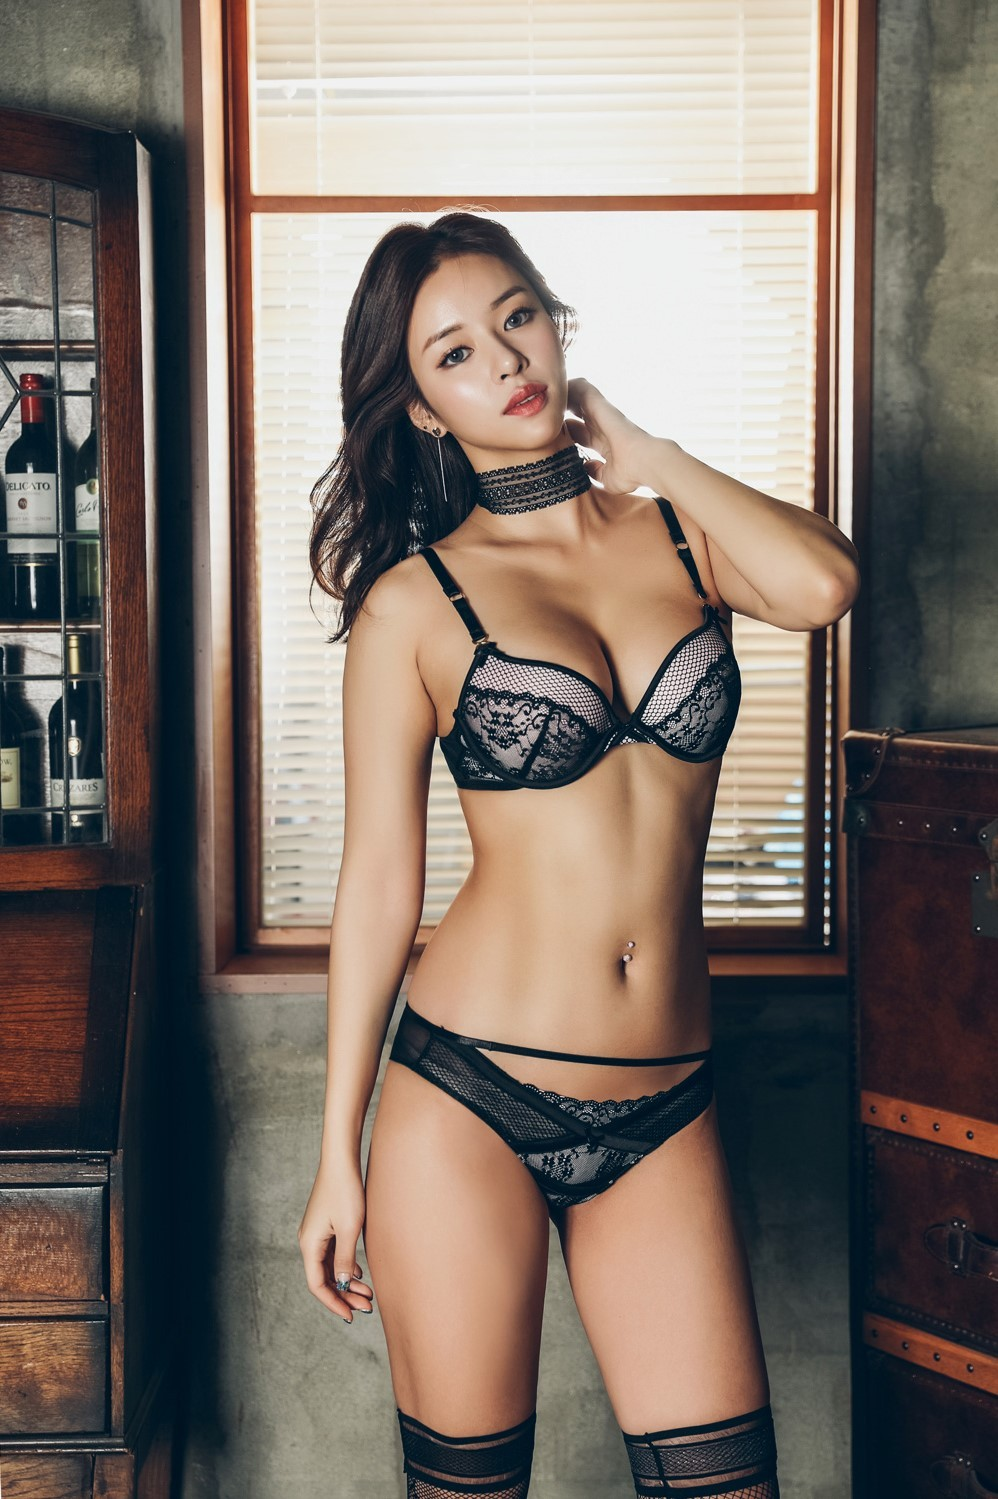 beautiful Korean girl in lingerie